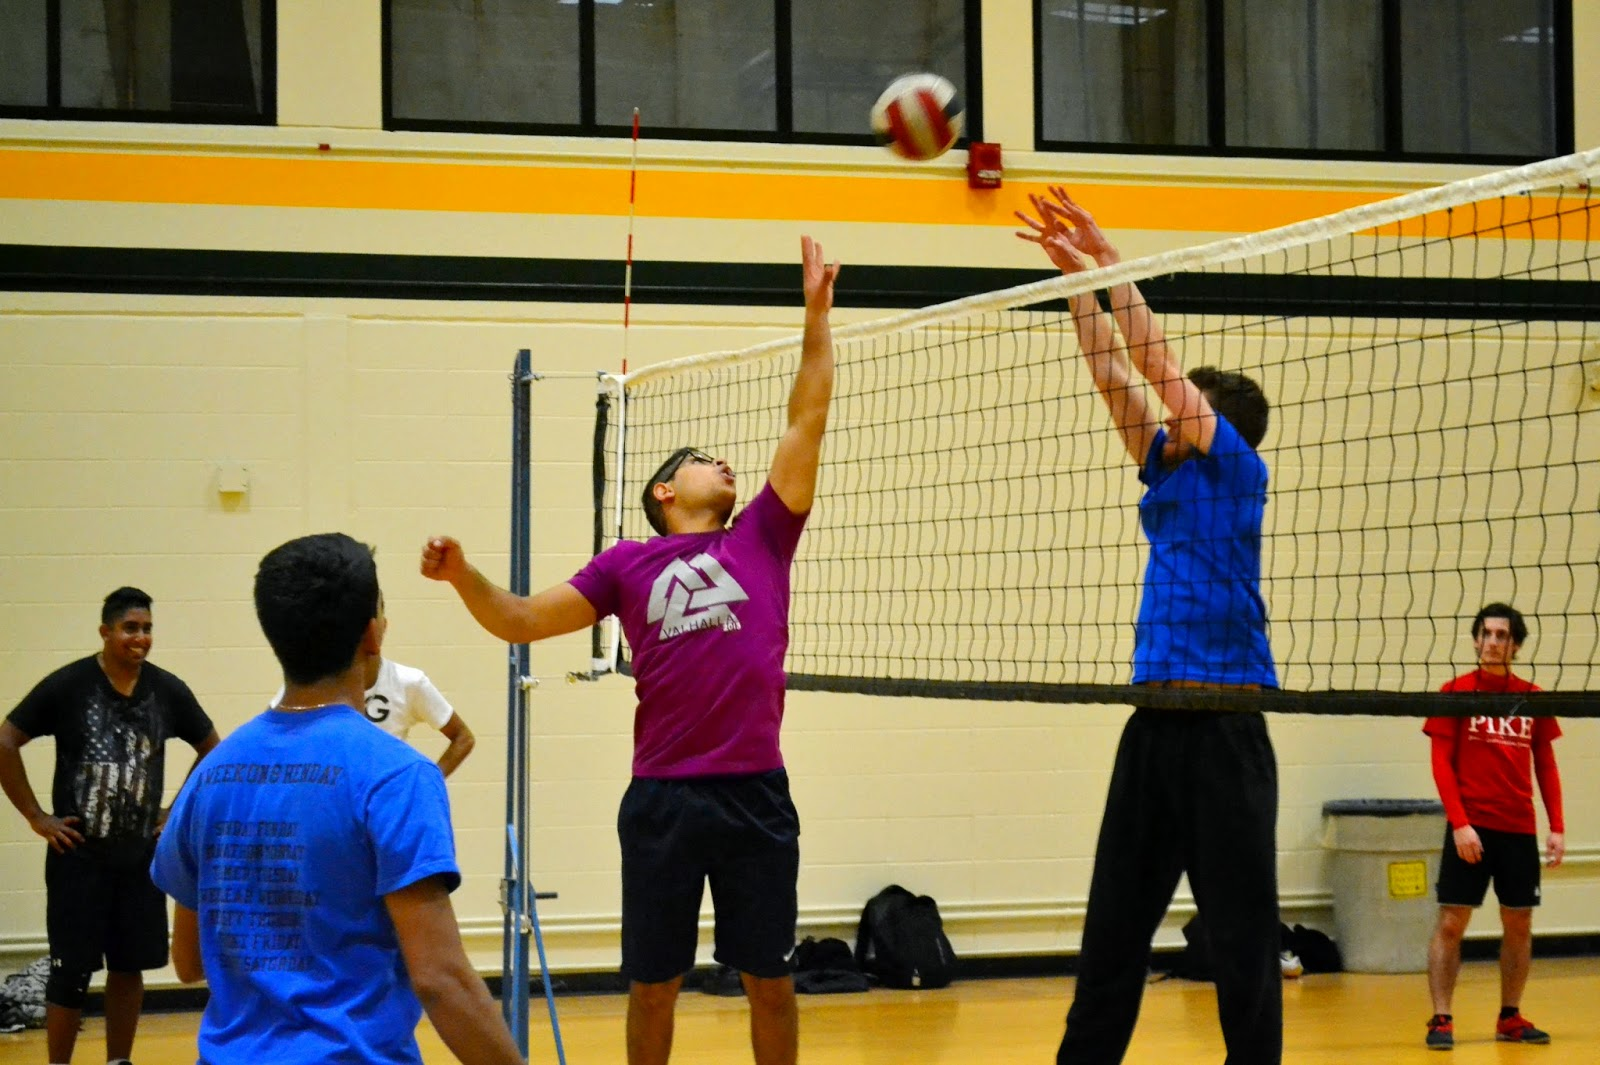 Volleyball at UAlberta (intramurals)